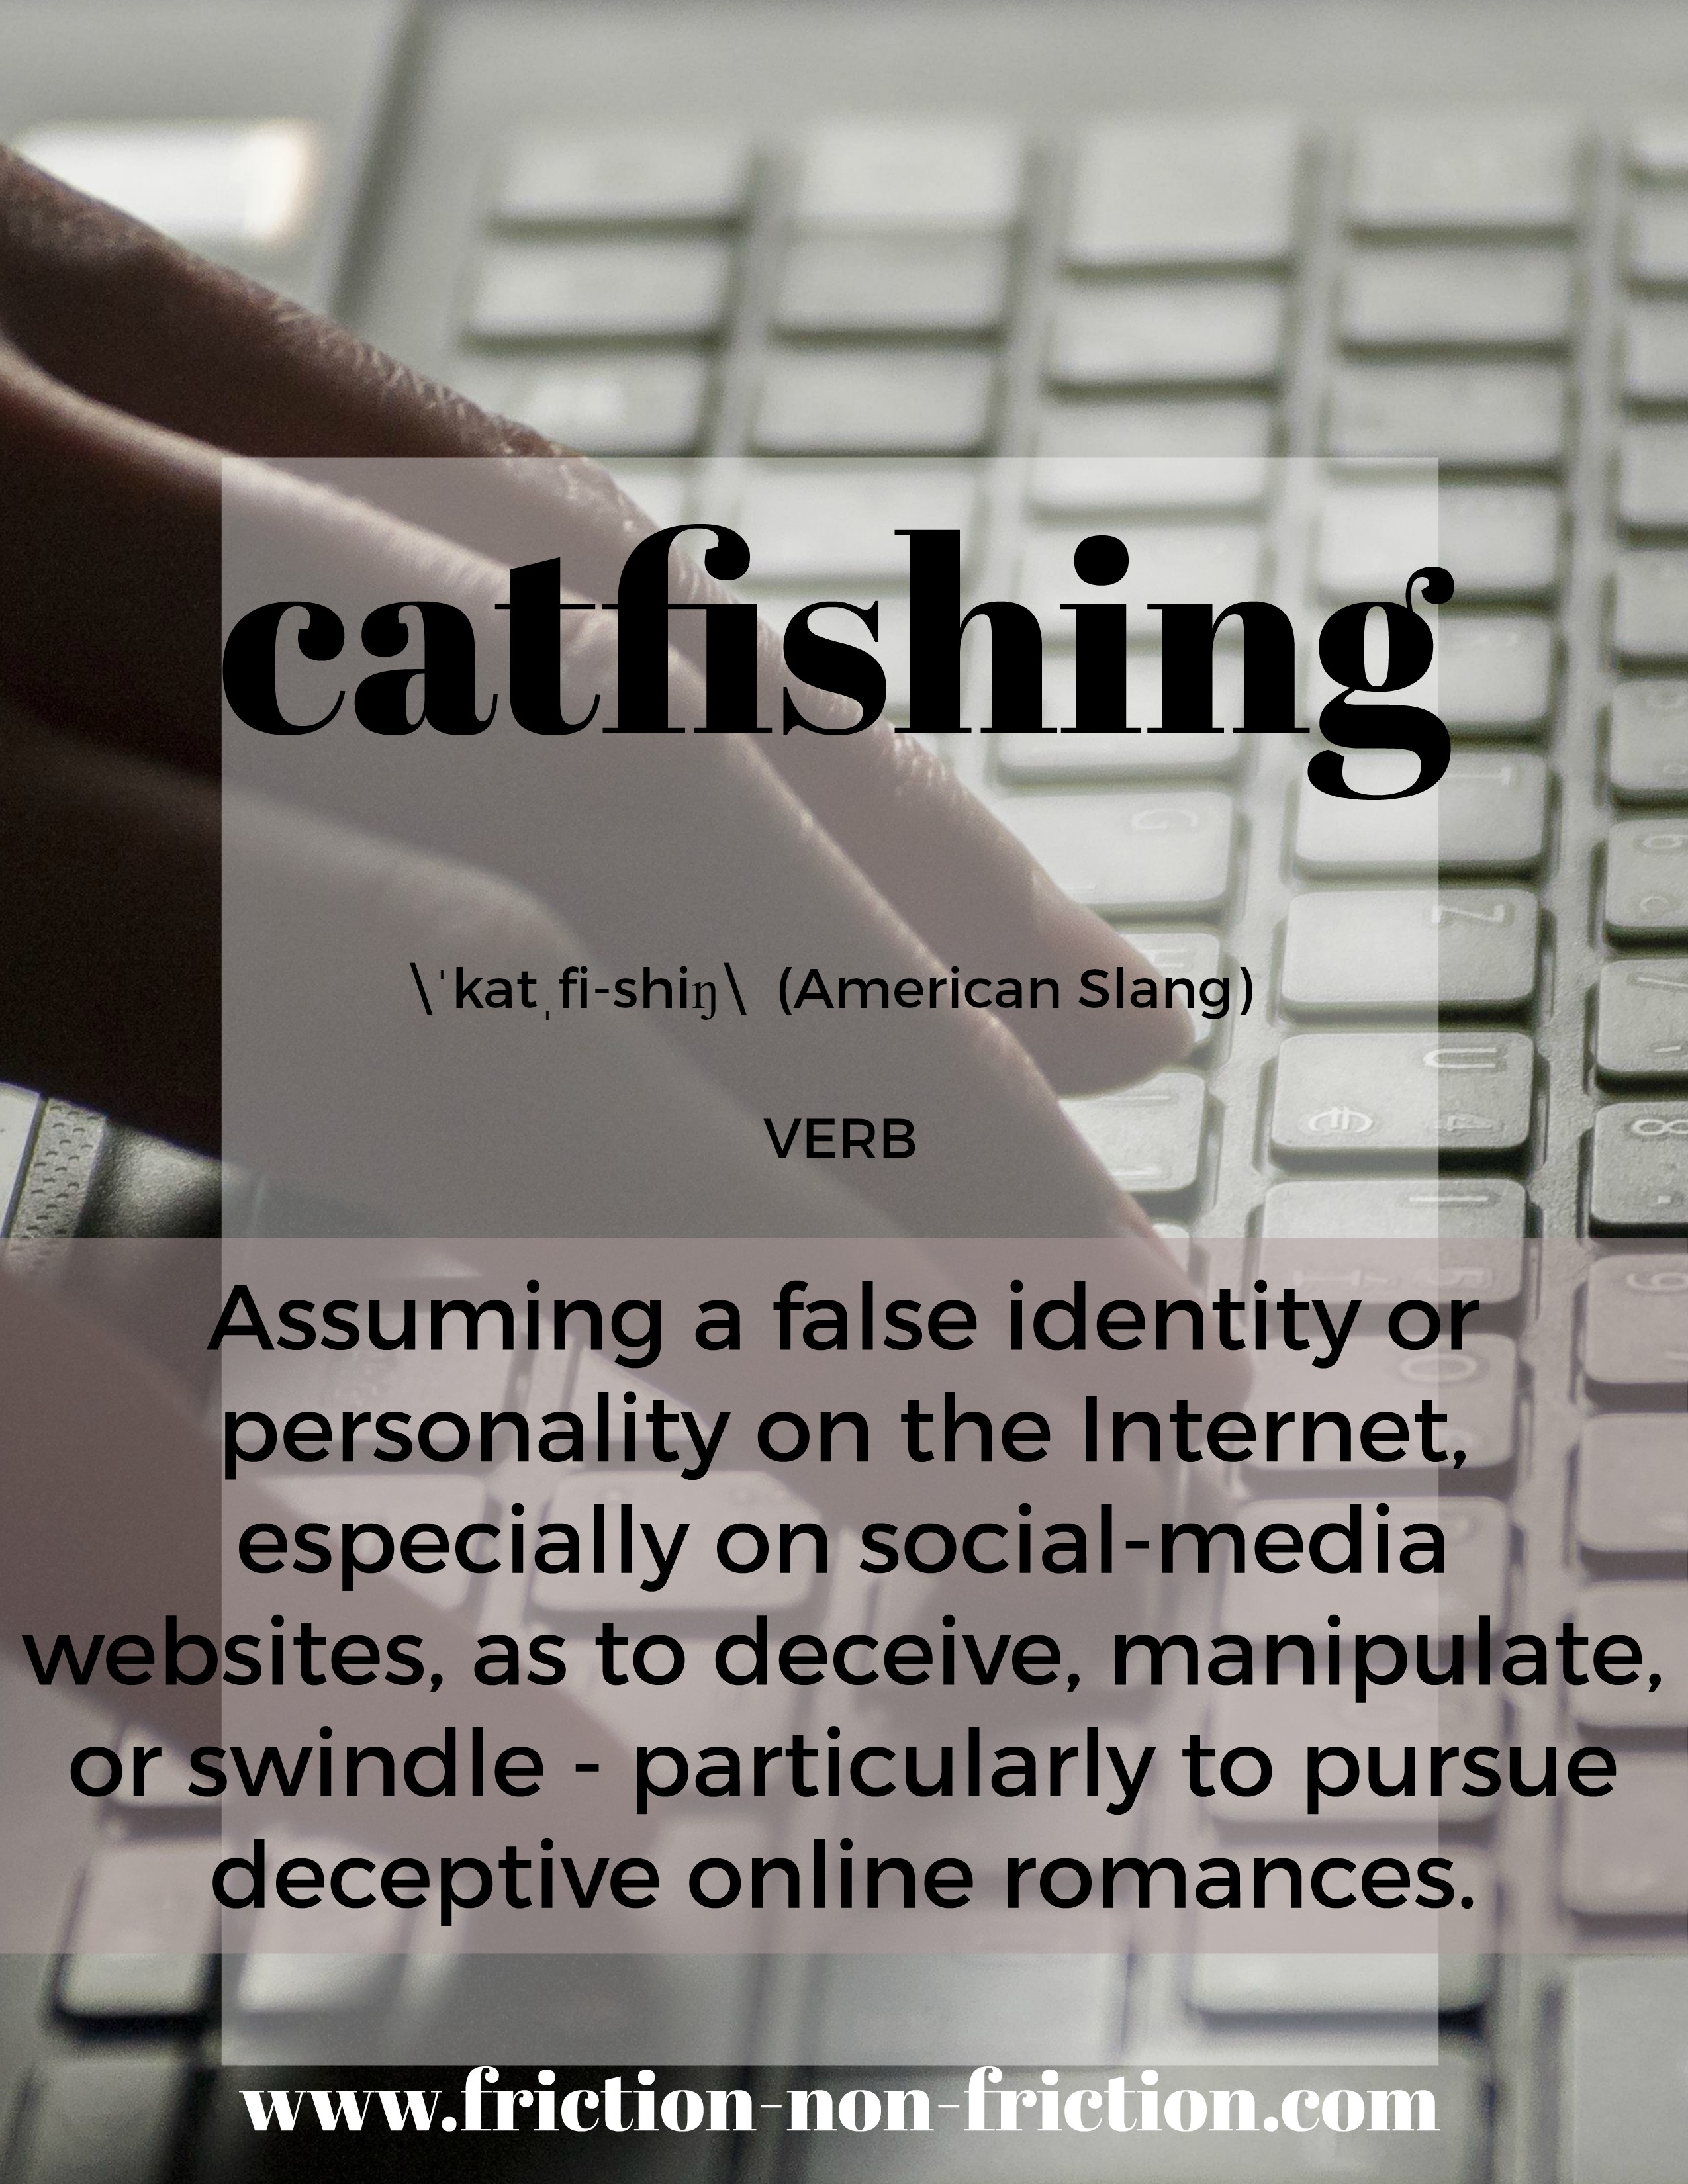 Catfishing -- another great FRICTIONARY definition from Friction|non|Friction